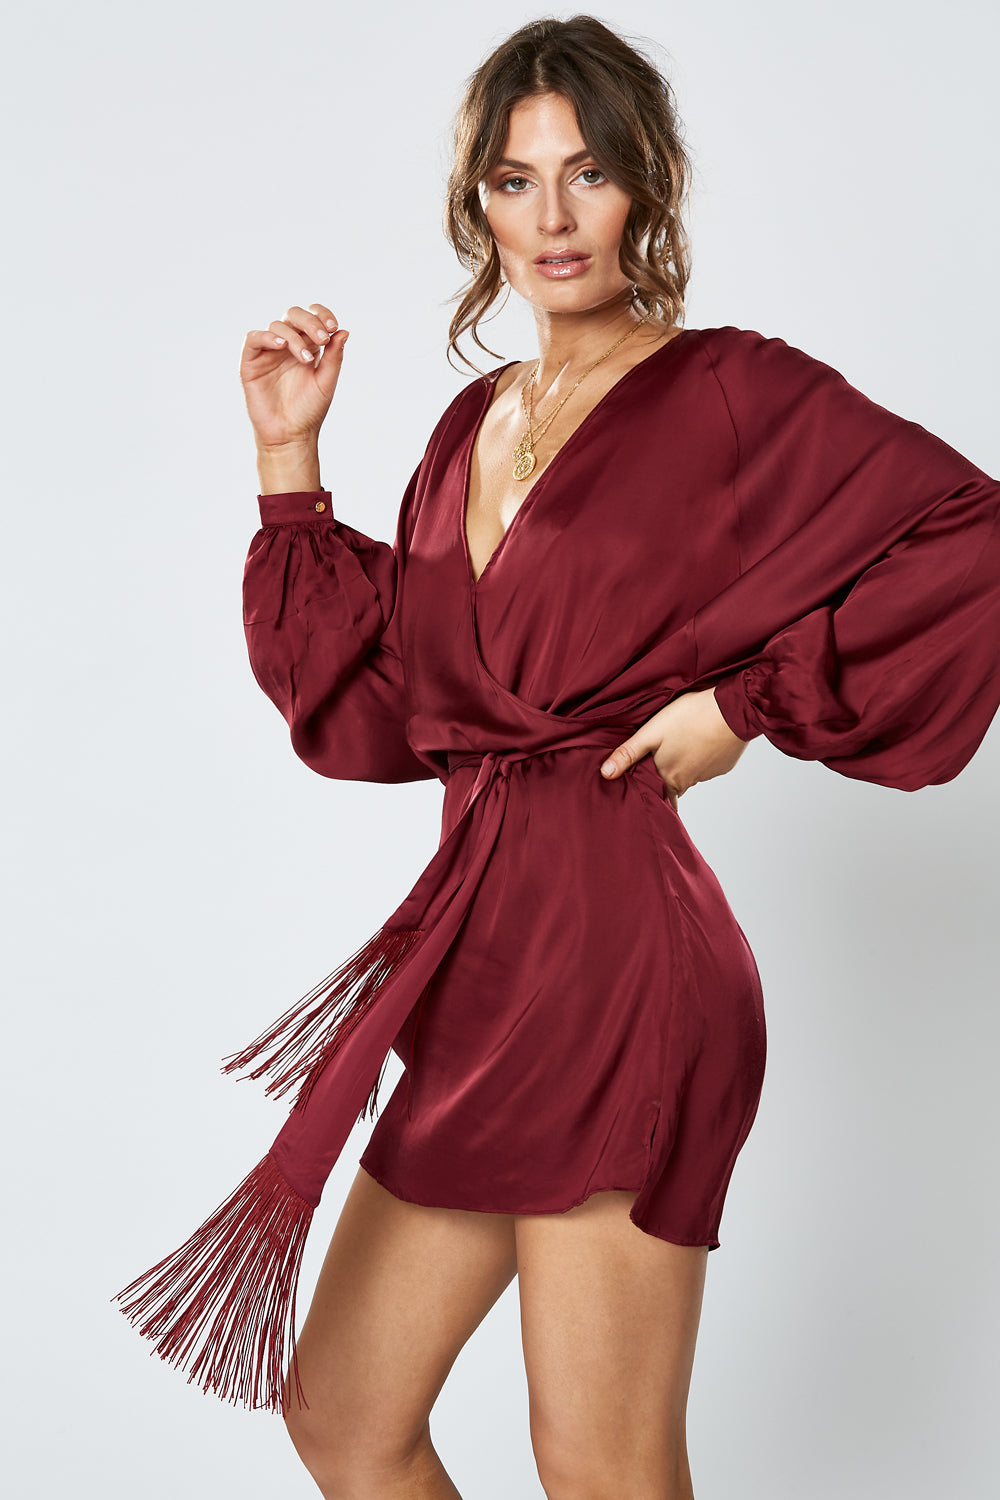 BRITANNIA LONG SLEEVE DRESS WINE